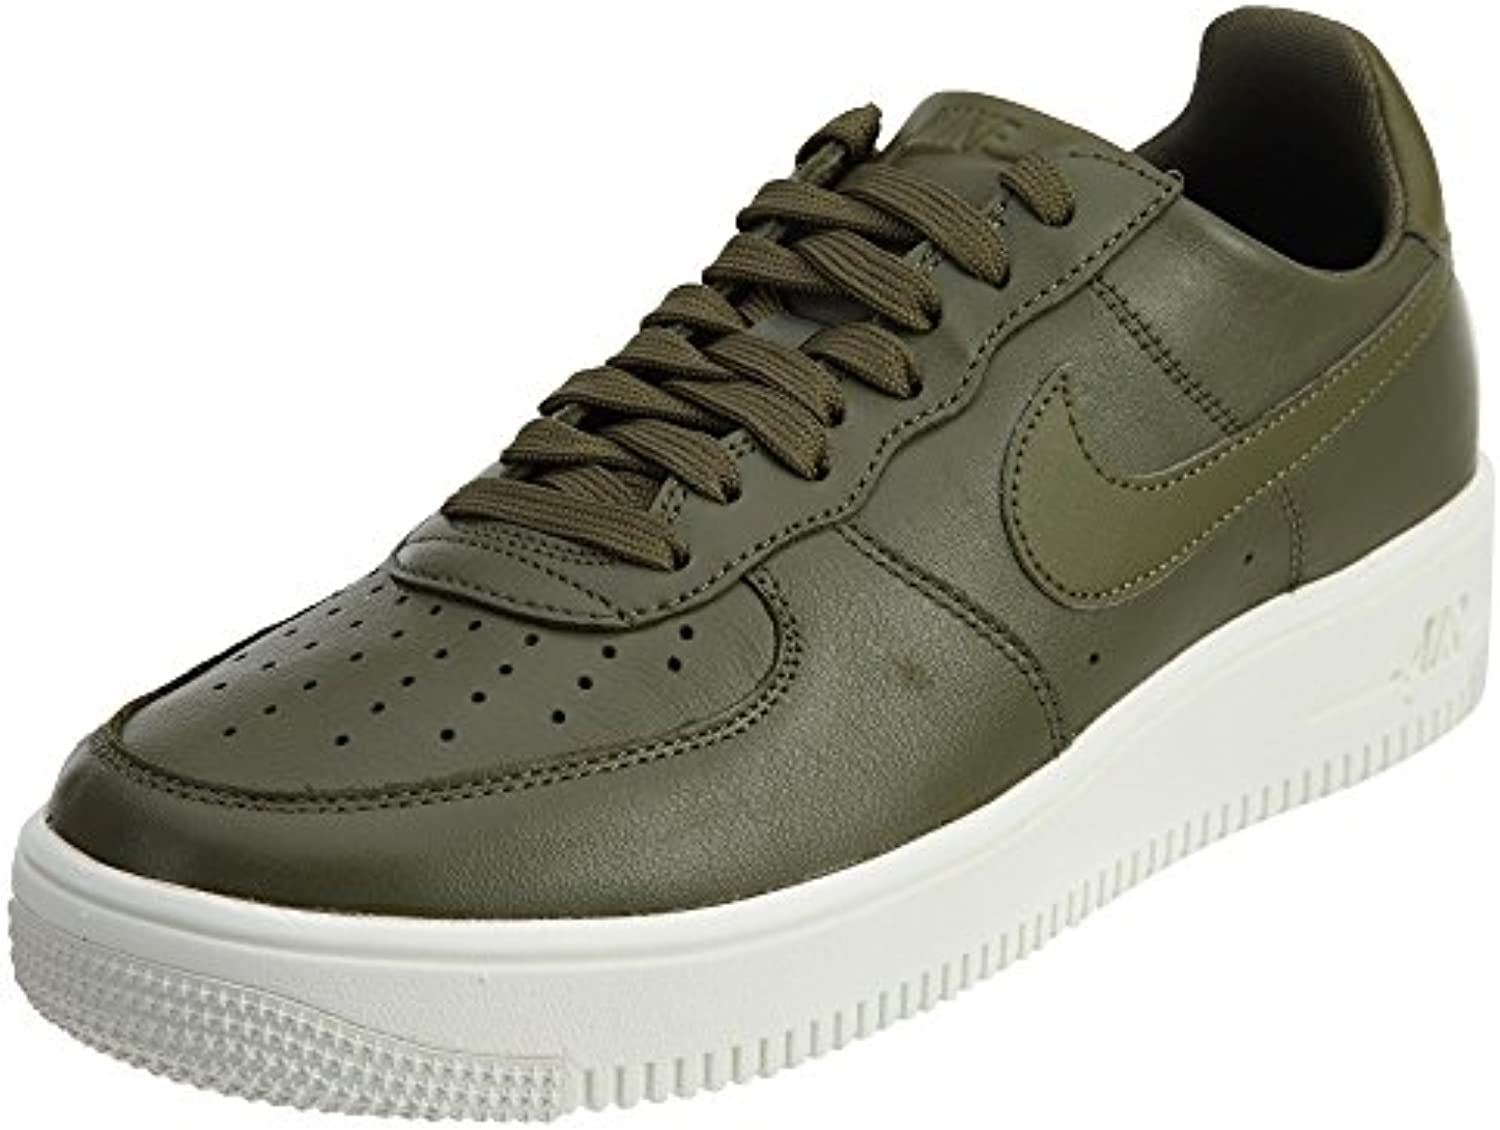 Nike Air Force 1 UltraForce Leather Medium Olive Size 7.5 Mens US